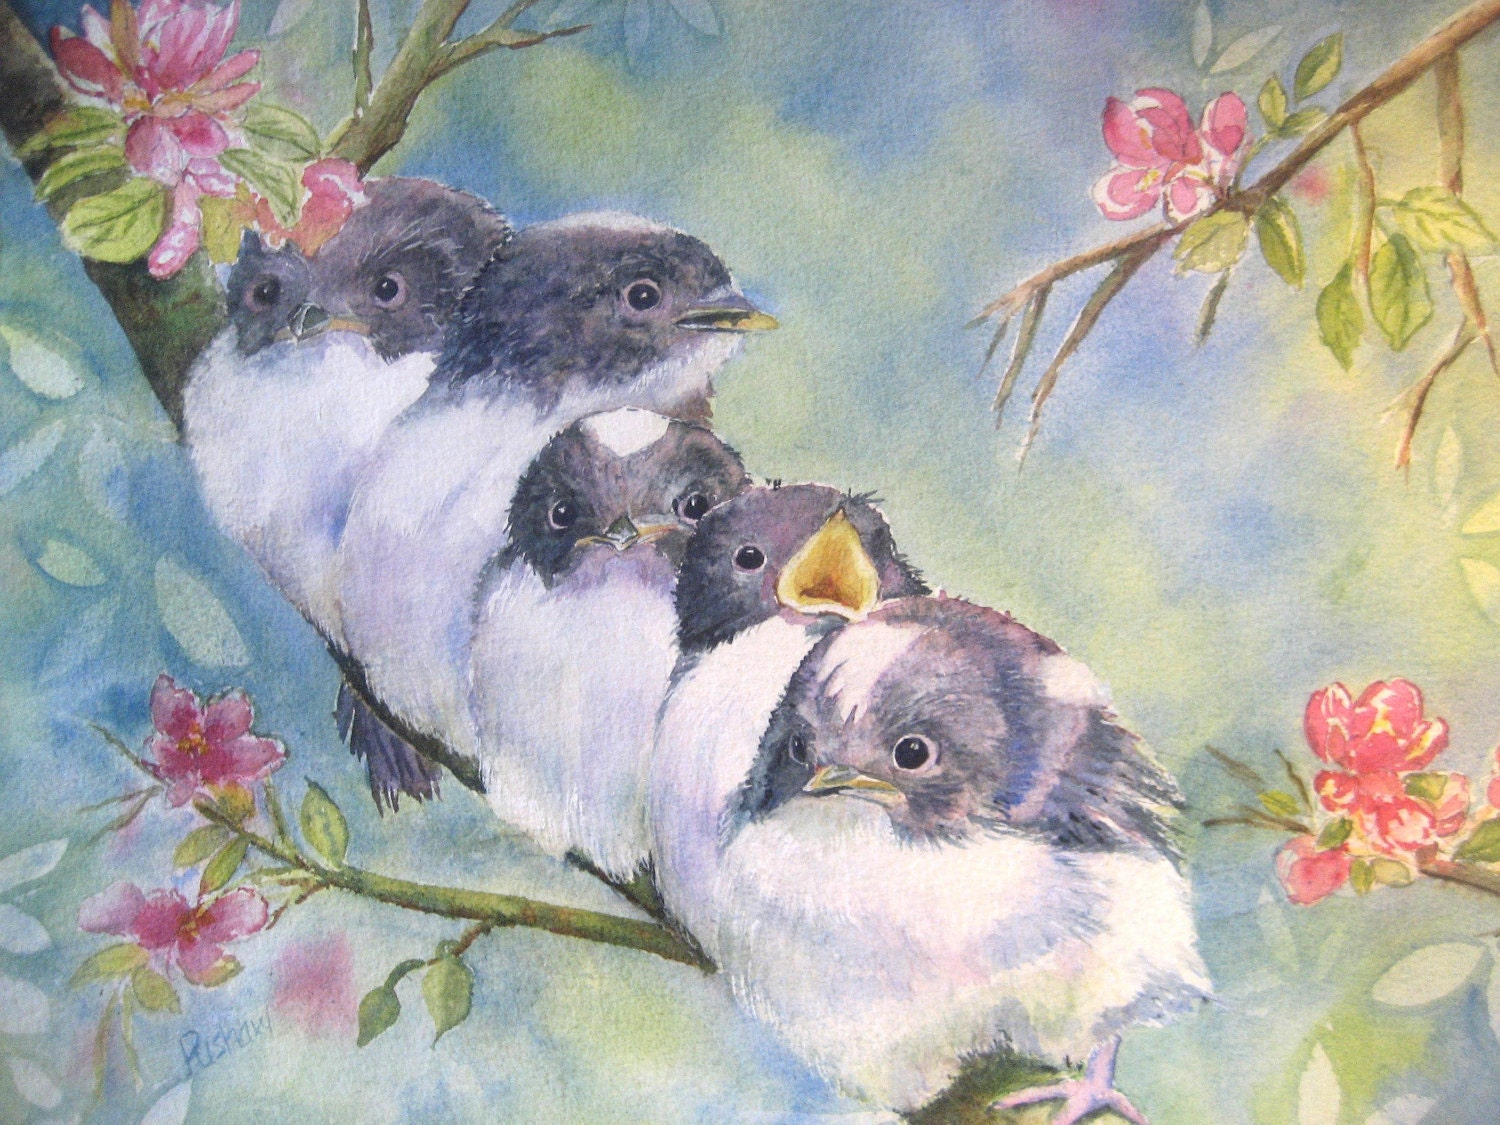 Original painting of baby birds getting ready to fly the coop.